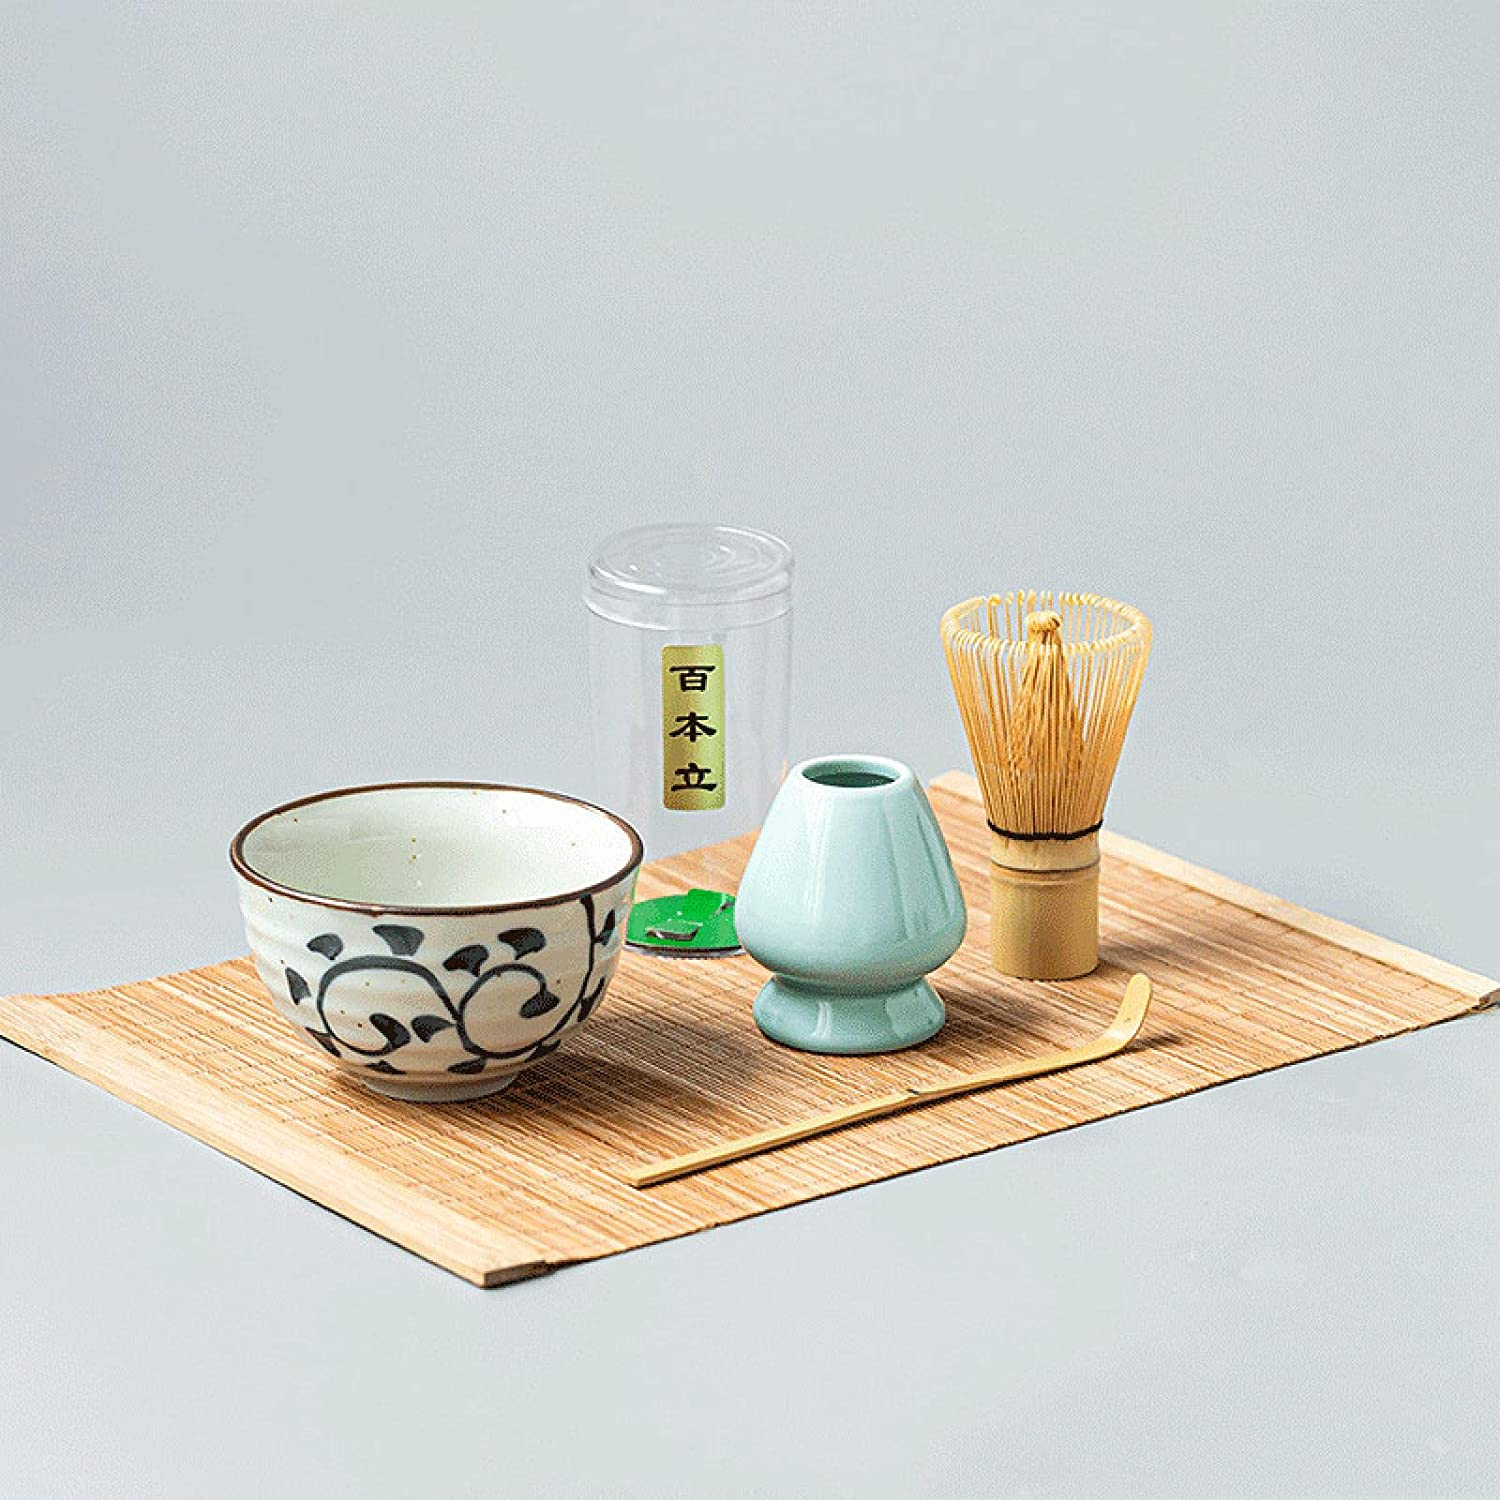 N\C Matcha Tool Set Tea Bowl Bam Tray Bamboo Challenge the lowest price of Japan Spoon Limited Special Price White